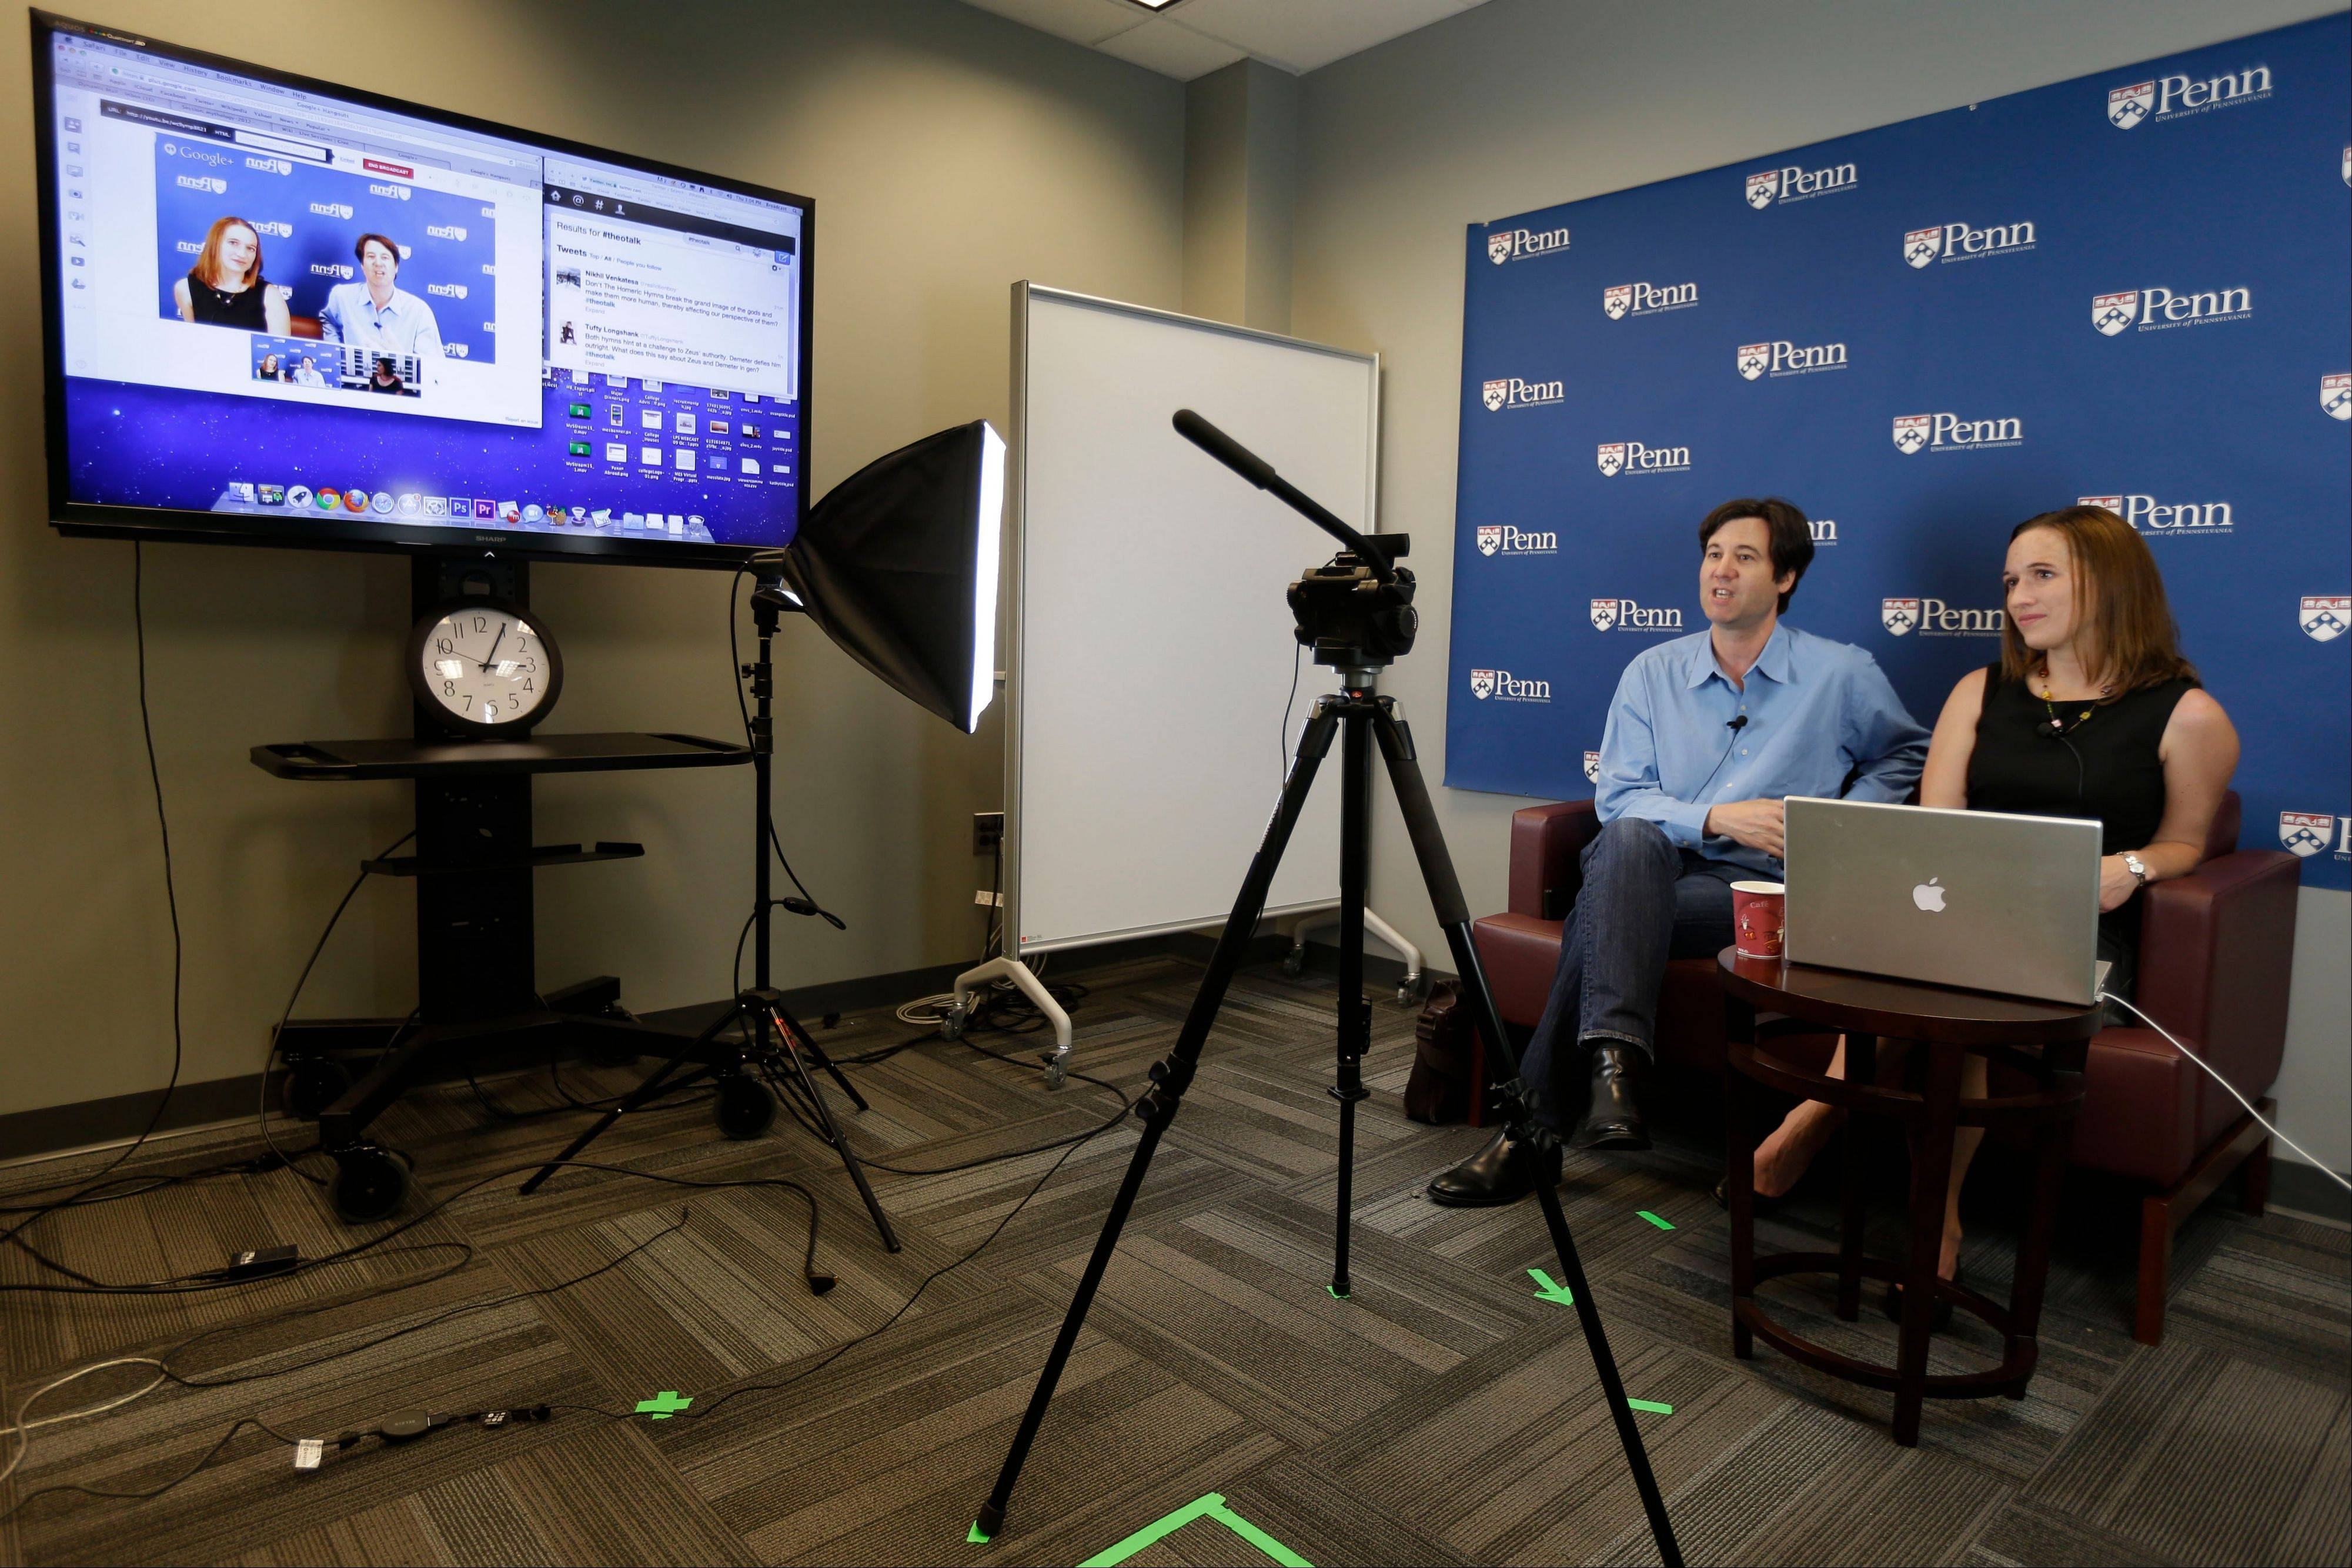 University of Pennsylvania professor Peter Struck, accompanied by teaching assistant Cat Gillespie, teaches a mythology class during a live recording of a massive, open, online classes (MOOC), in Philadelphia. Recent financial pressures and new technologies are opening cracks in traditional, age-old structures of higher education. Terms like 'credit hour' and even the definition of what it means to be a college are in flux. Higher education is becoming 'unbundled.' Individual classes and degrees are losing their connections to single institutions, in much the same way iTunes has unbundled songs from whole albums, and the Internet is increasingly unbundling television shows and networks from bulky cable packages.